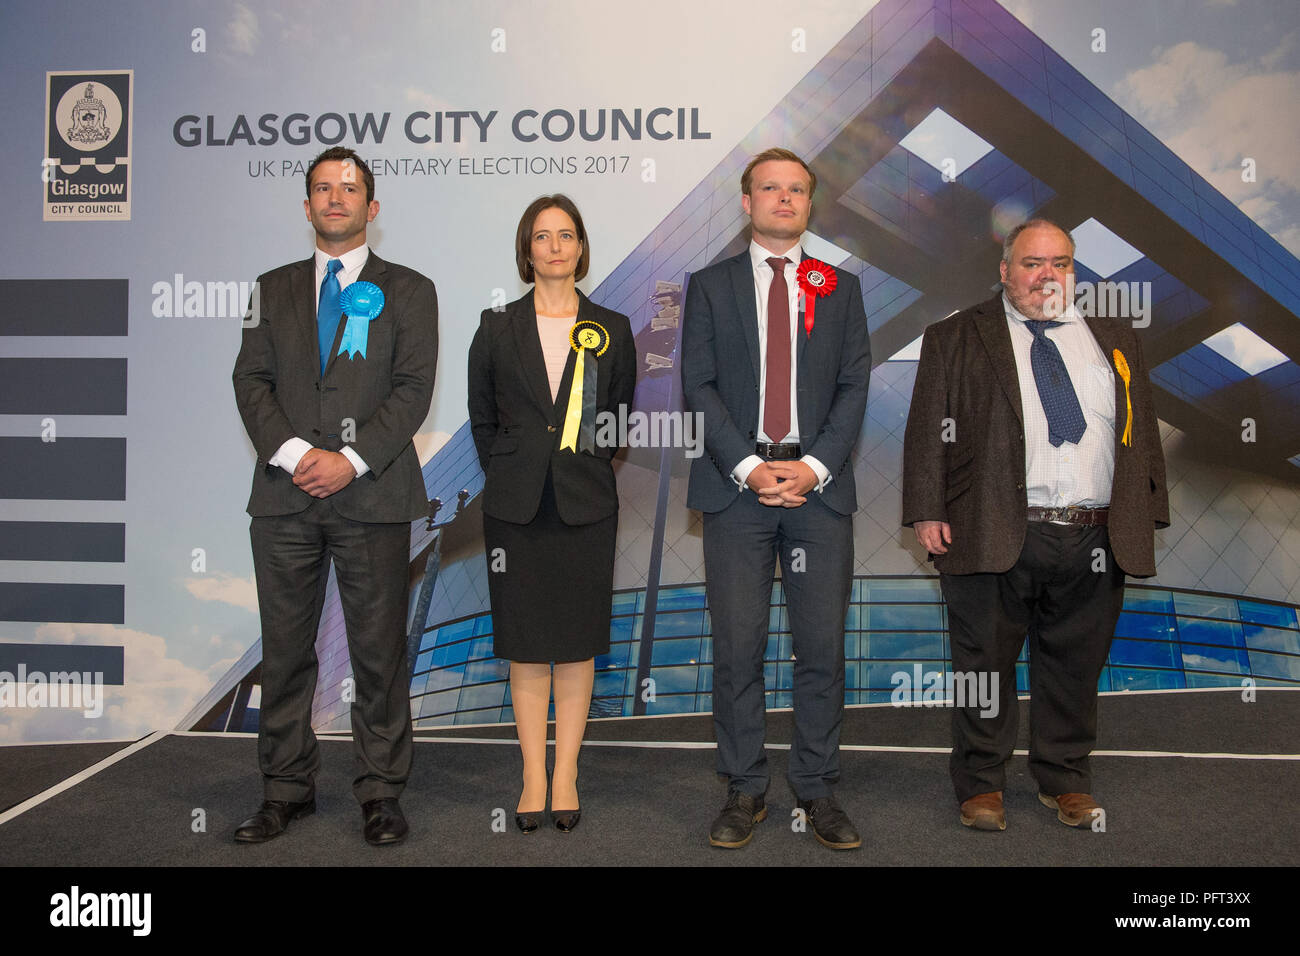 Carol Monaghan SNP Glasgow North West candidate, UK Parliamentary Elections, Emirates Sir Chris Hoy Stadium Glasgow, 9th June 2017 - Stock Image